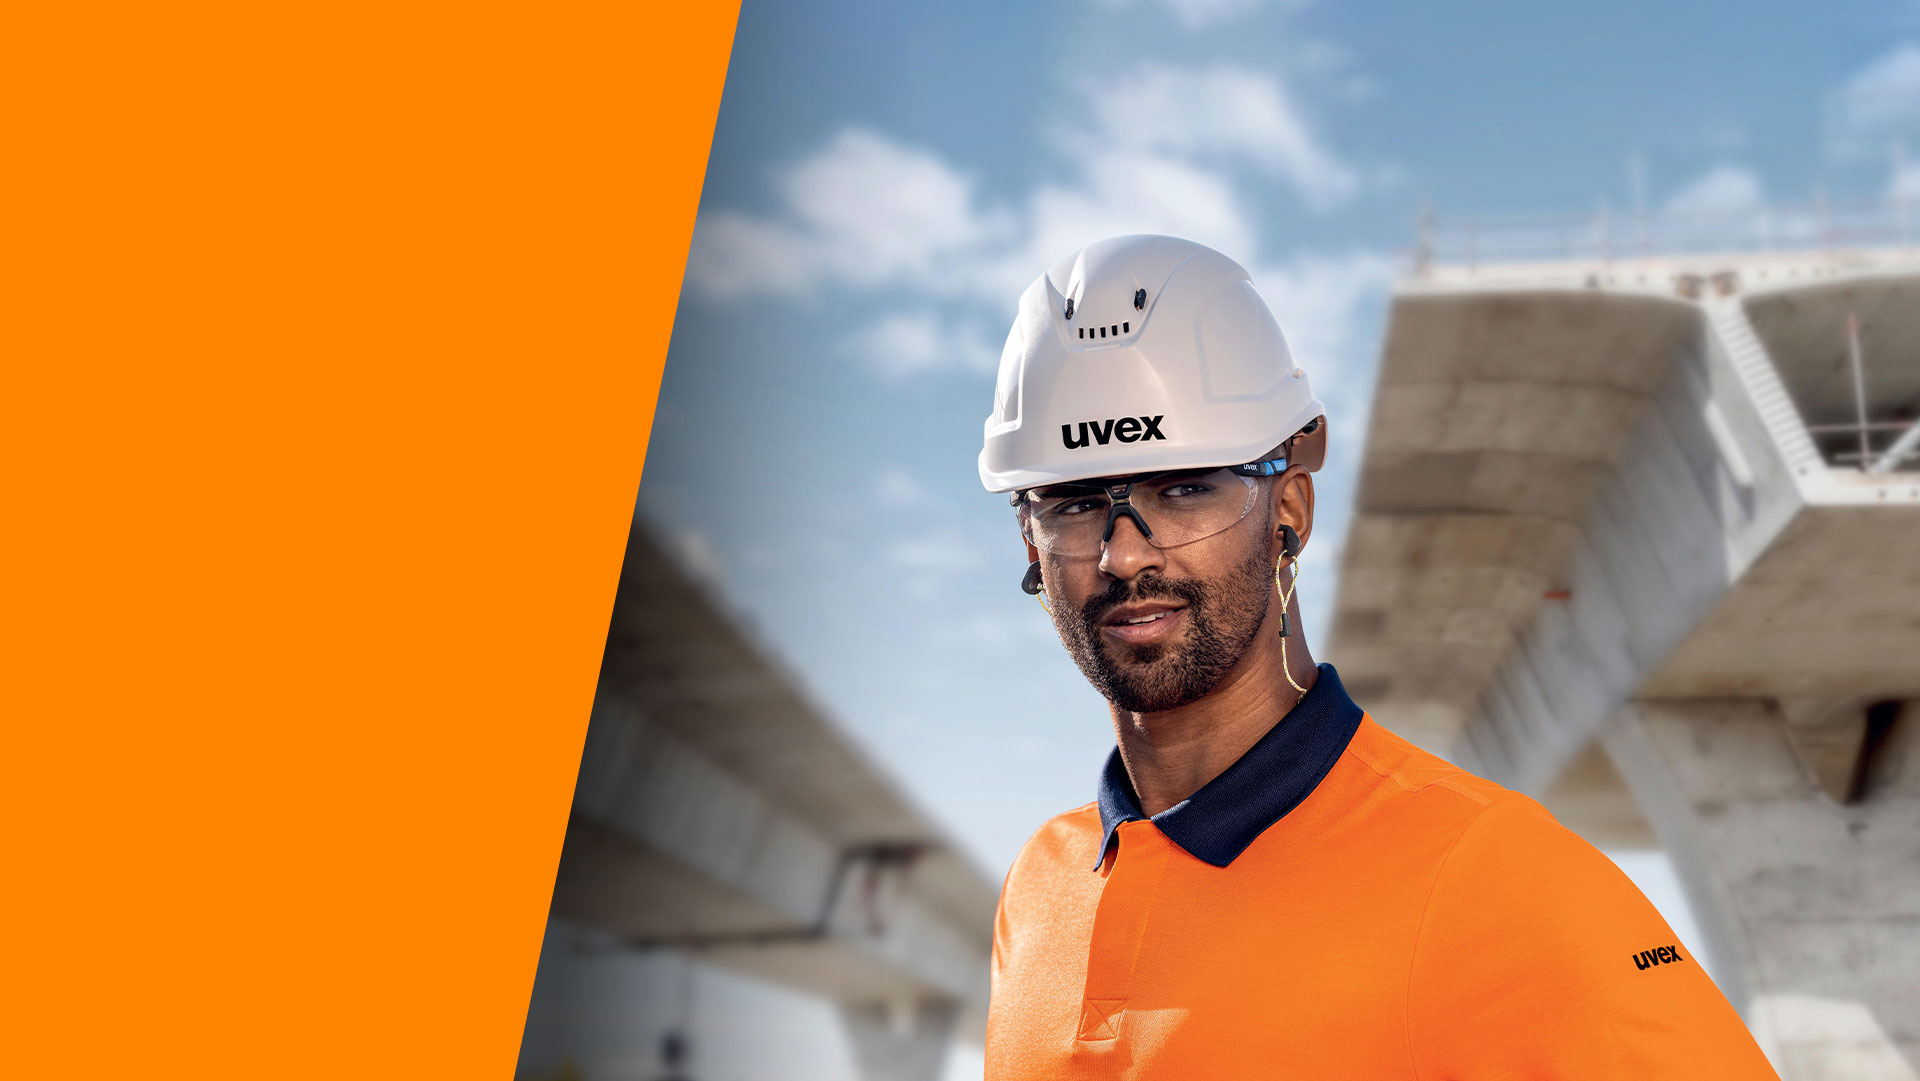 uvex xact-fit – a new dimension in earplugs